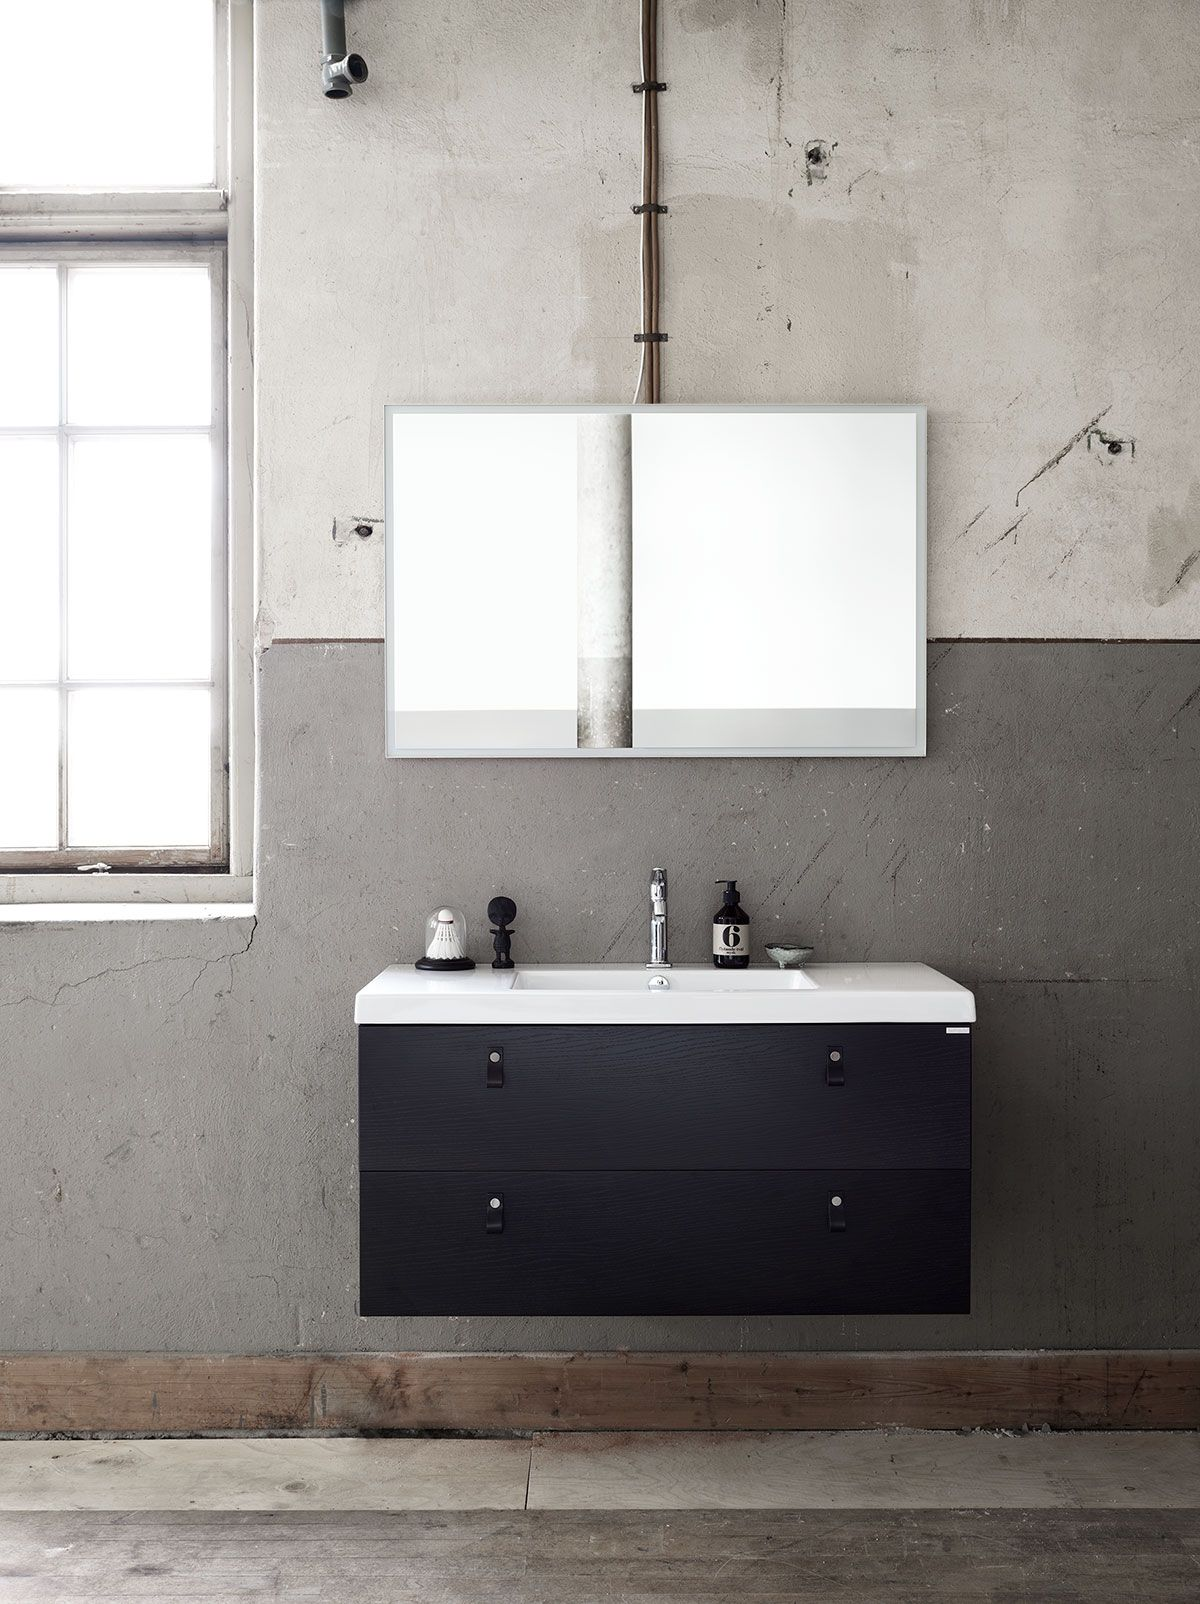 Bathroom inspiration Bathroom furniture with open shelves Bright B A T H R O O M